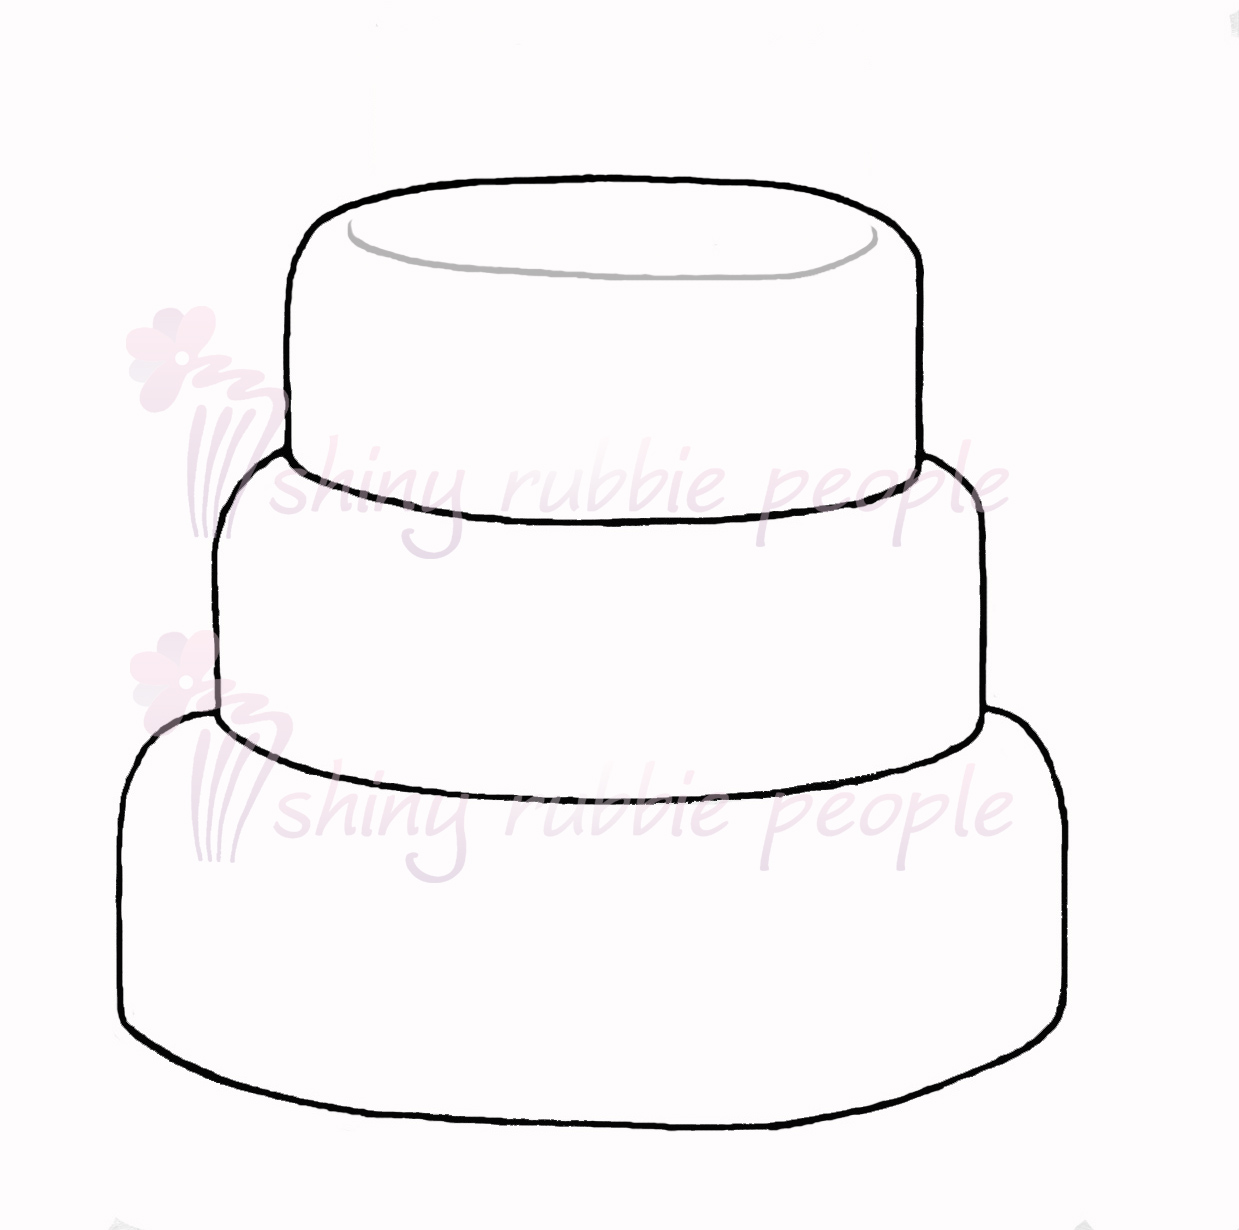 1239x1230 Clip Art Black And White Tiered Cake Clipart